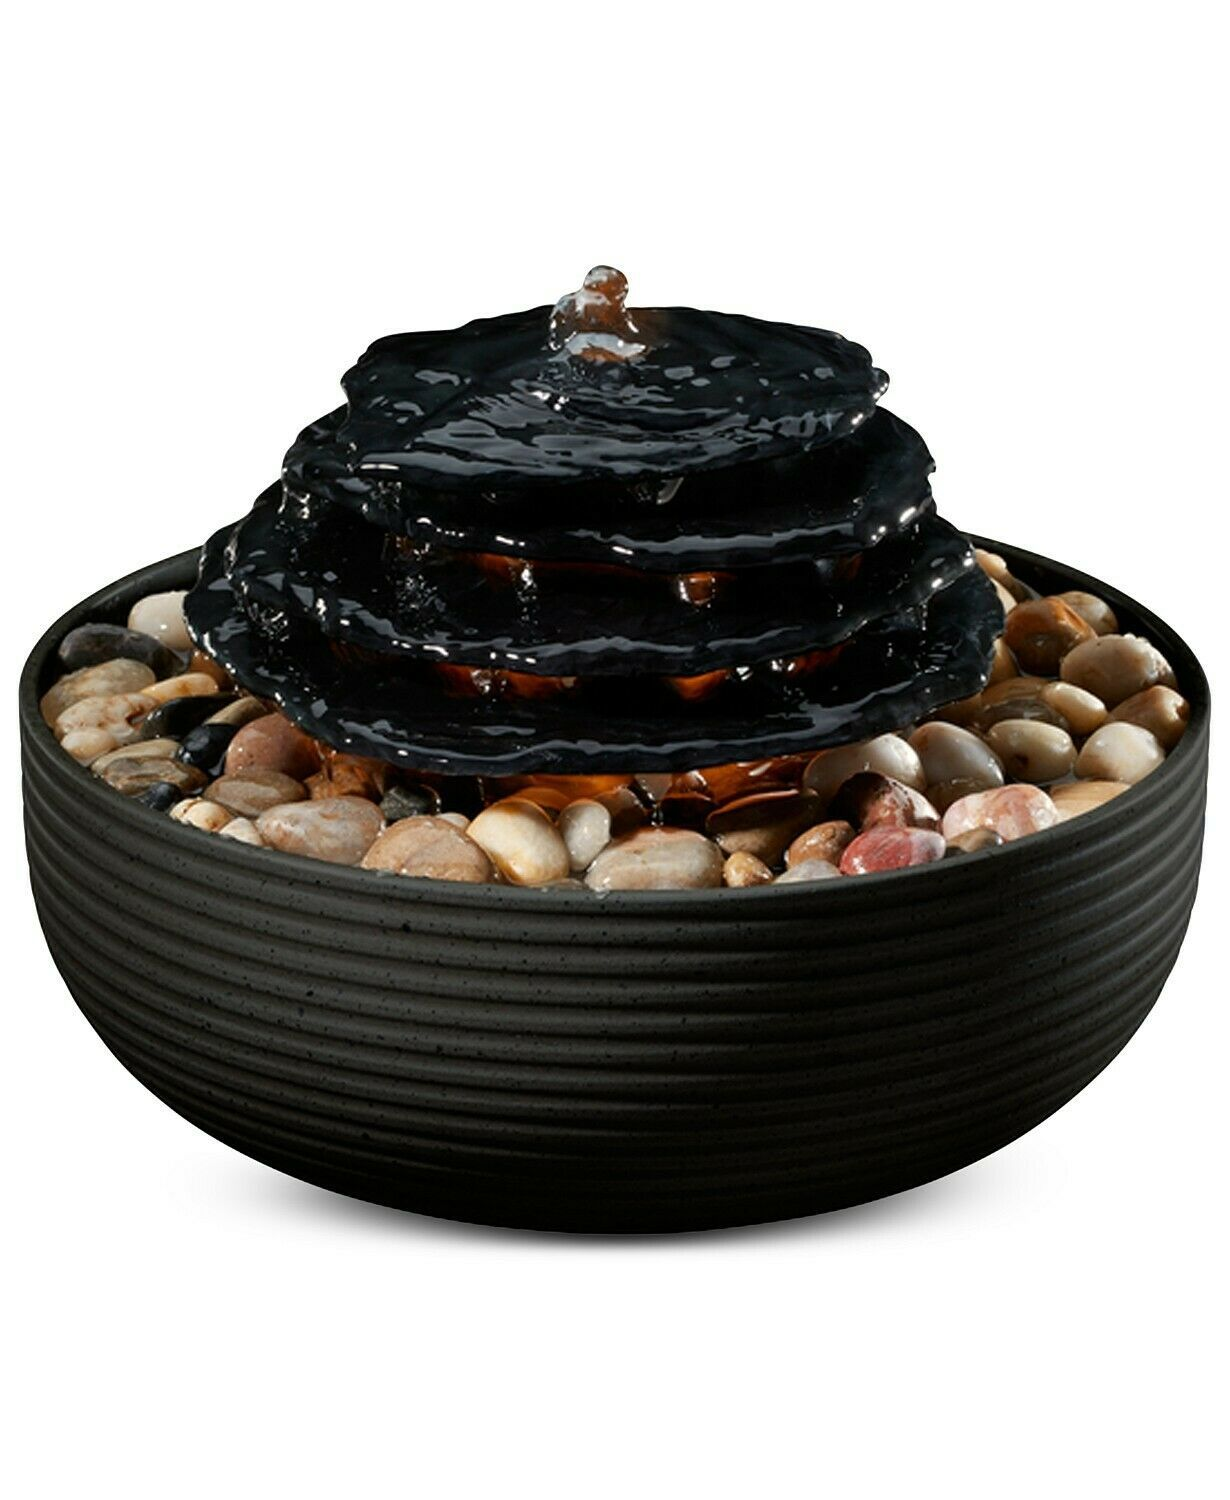 Mirra Zen Tabletop Relaxation Fountain Natural Water Sounds - $31.35